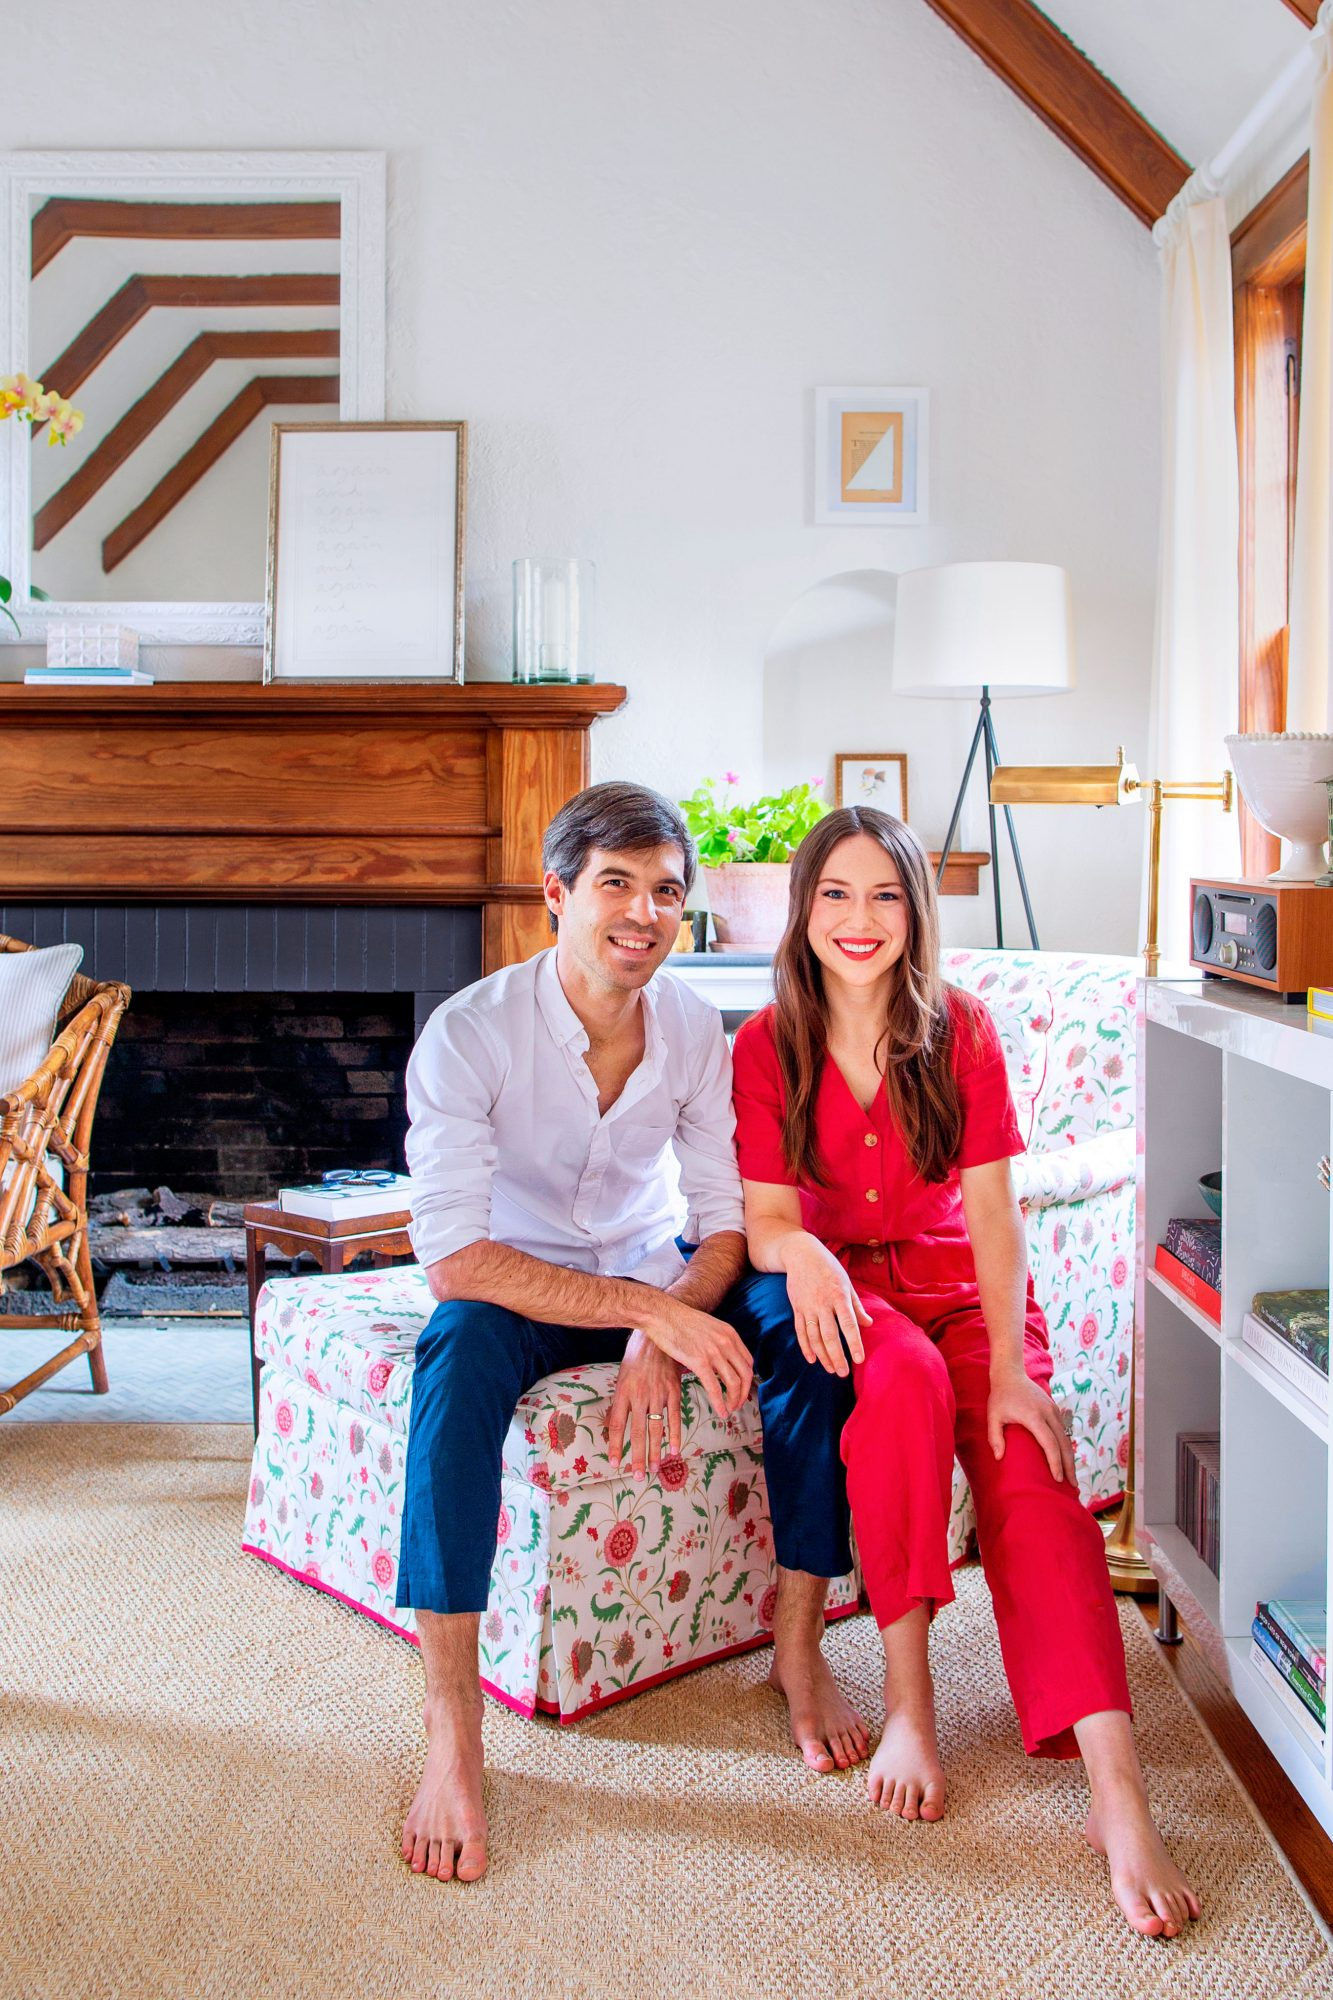 Adam and Amber Ford of The Happy Tudor blog in their living room